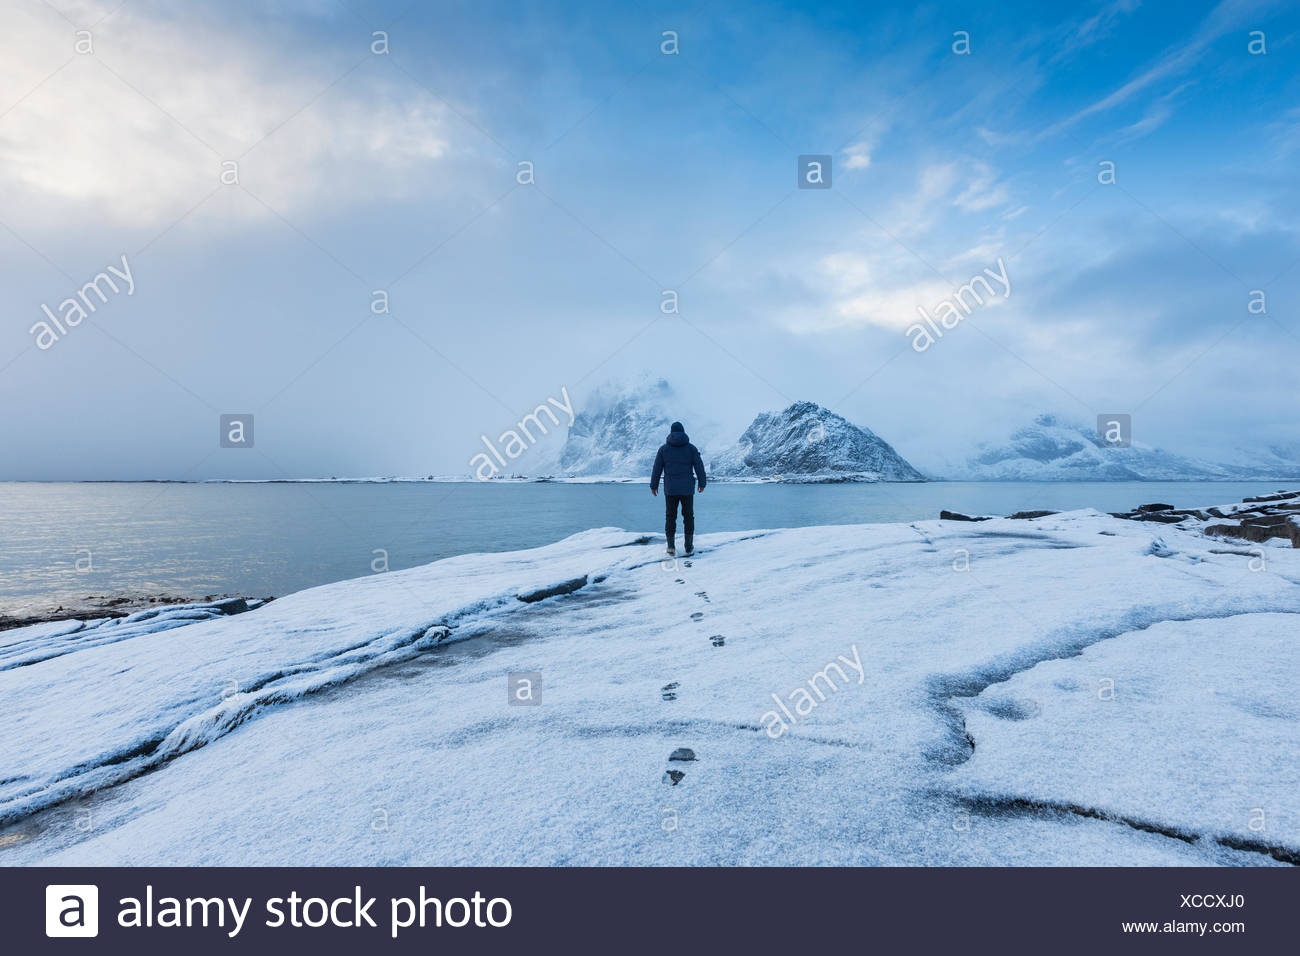 A man standing in snow looking out to sea - Stock Image